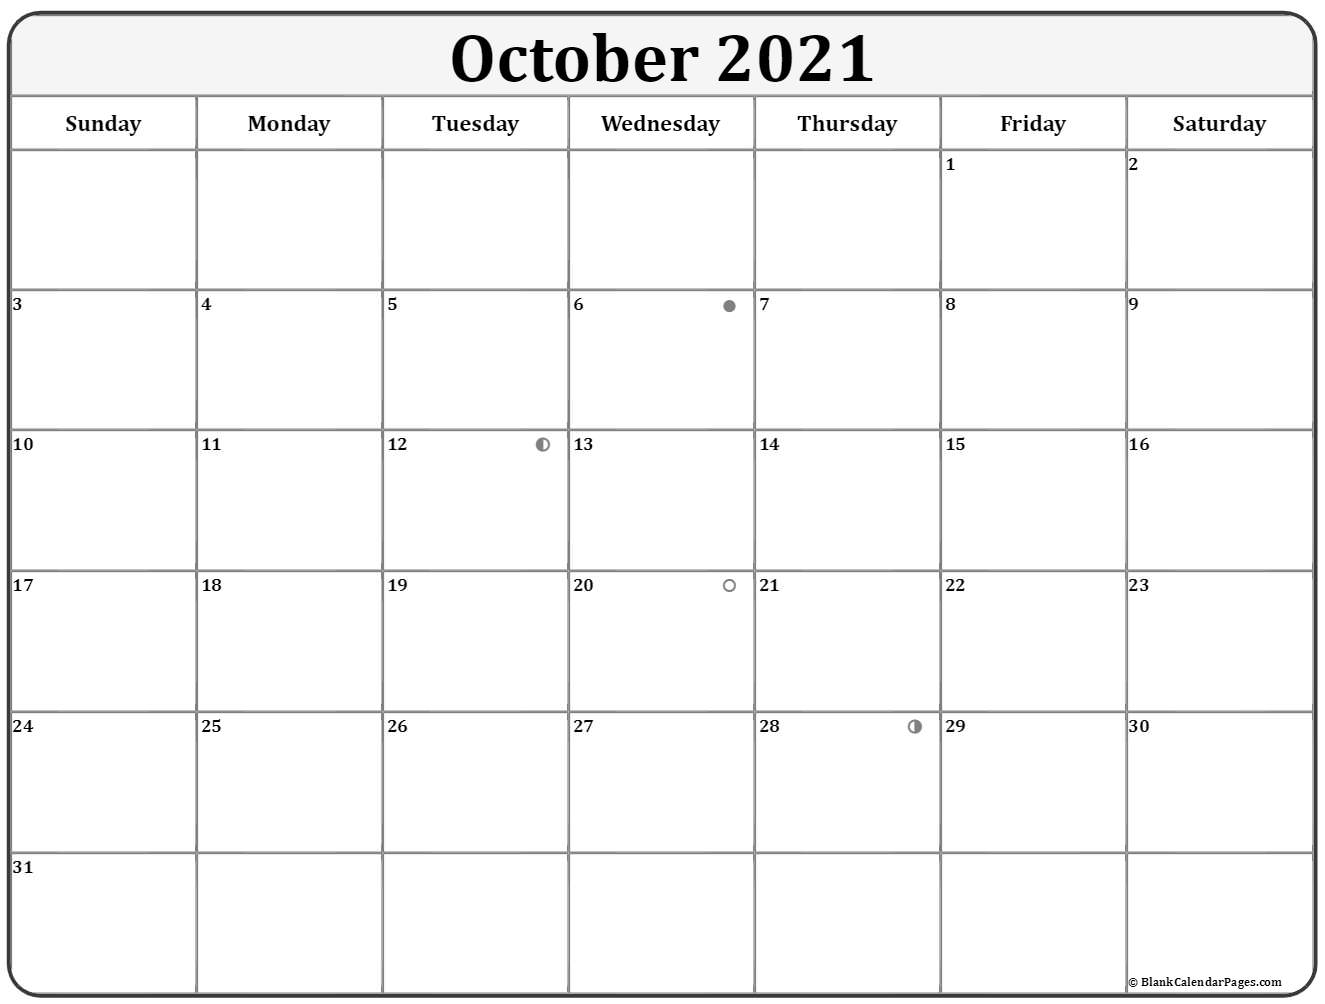 October 2019 moon phase calendar. lunar calendar